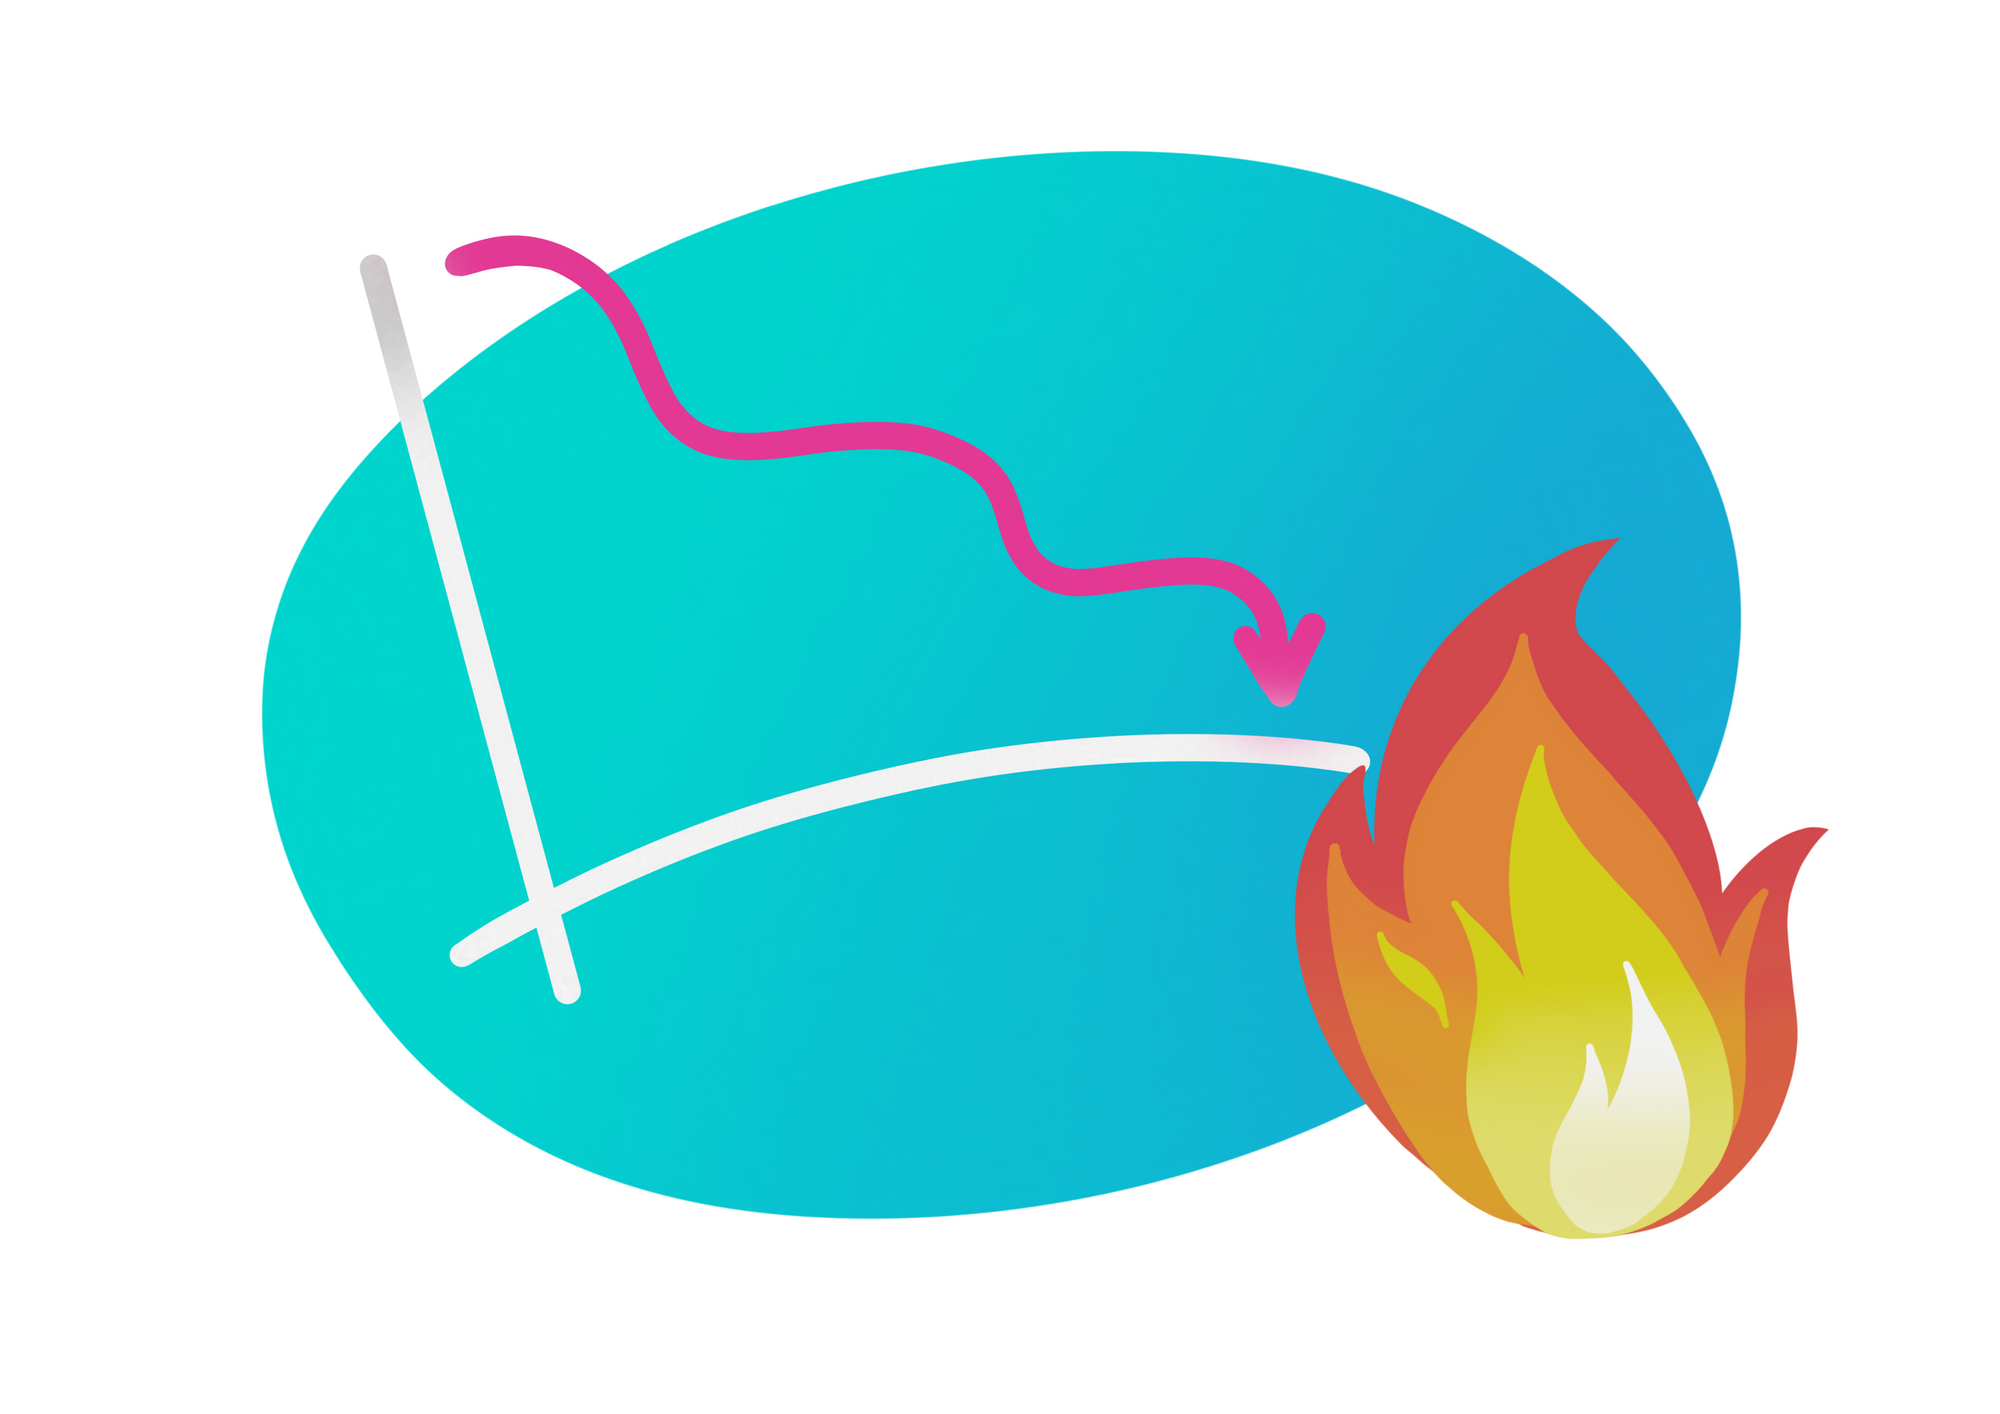 Introduction to Release burndown charts and how to create them in Jira